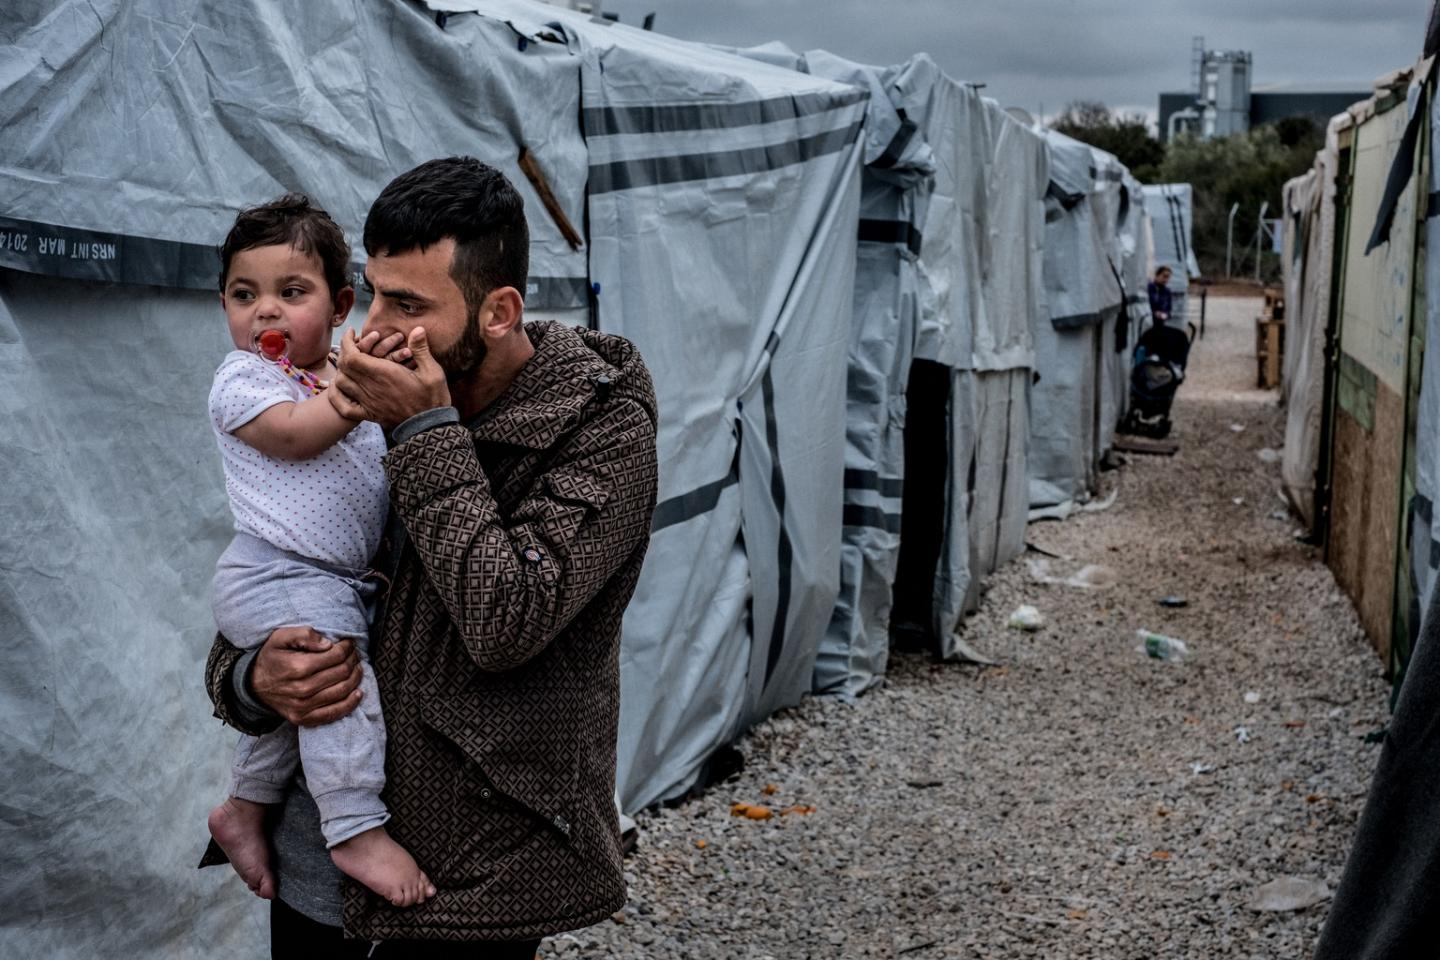 Father Barzan Hassan, from Iraq, holds one-year old Yamar, outside their shelter in Ritsona refugee camp near Chalcis, Greece.